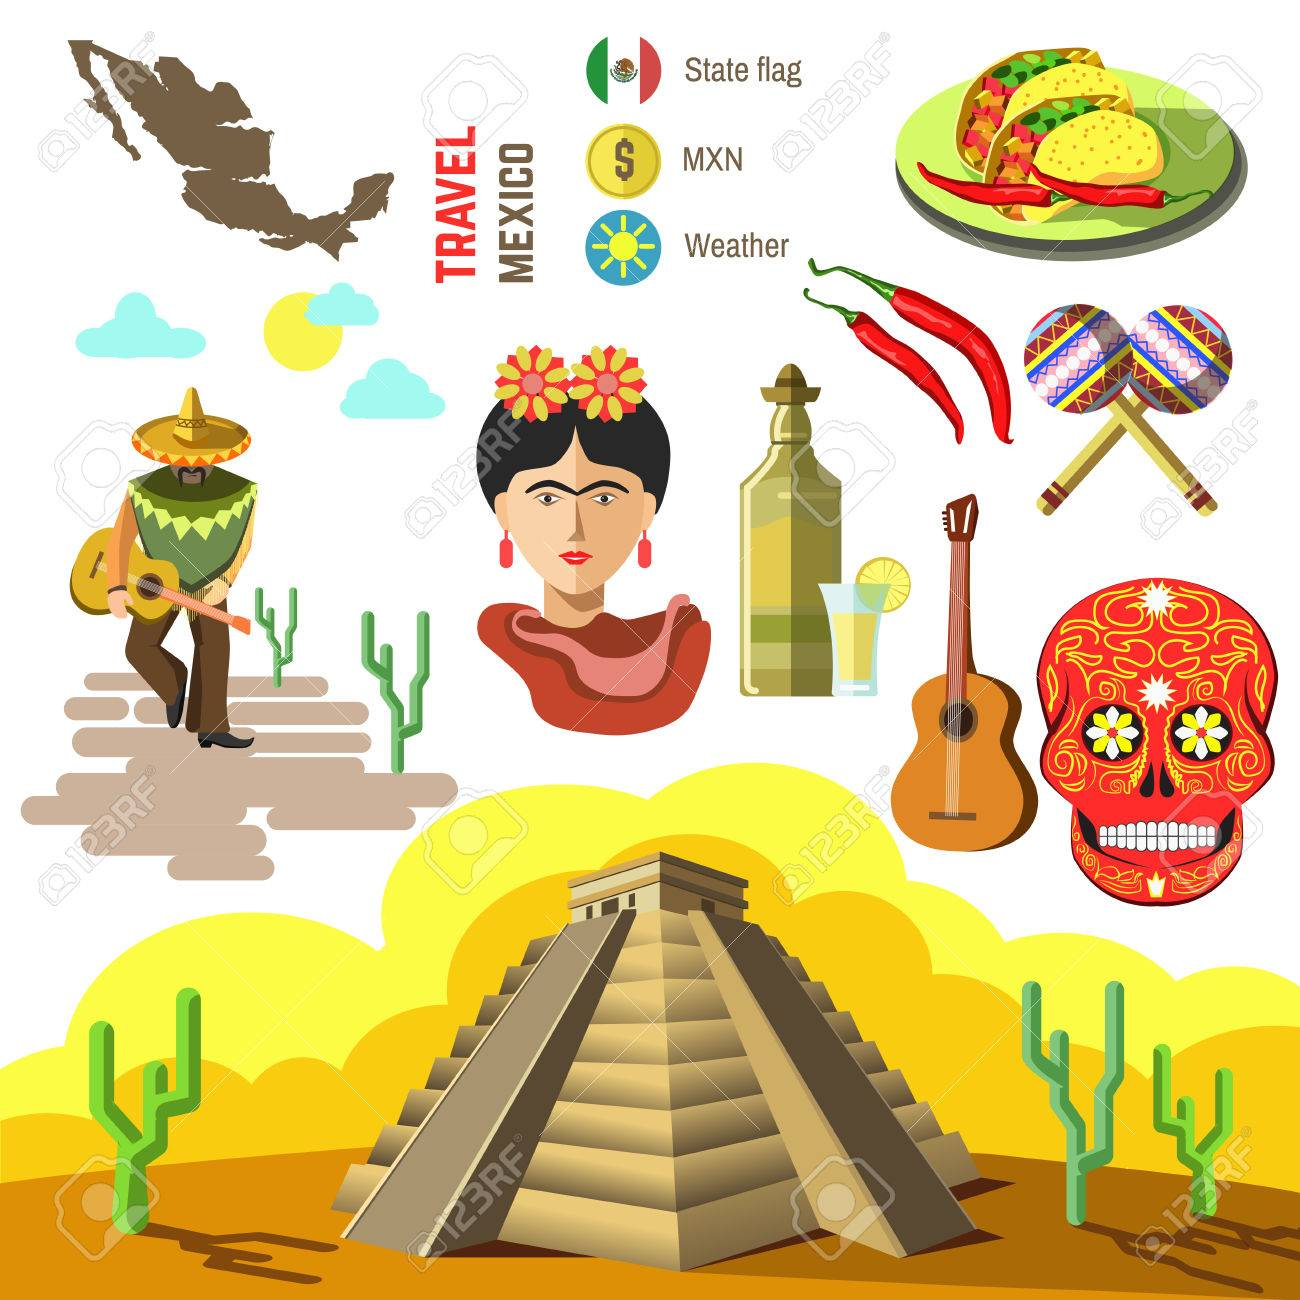 Set of Mexico travel symbols. Mexican flat illustrations. Collection icons tequila, chili and taco, sombrero, guitar and maracas, skull and Machu Picchu pyramid, Frida, flag and map. - 65361479